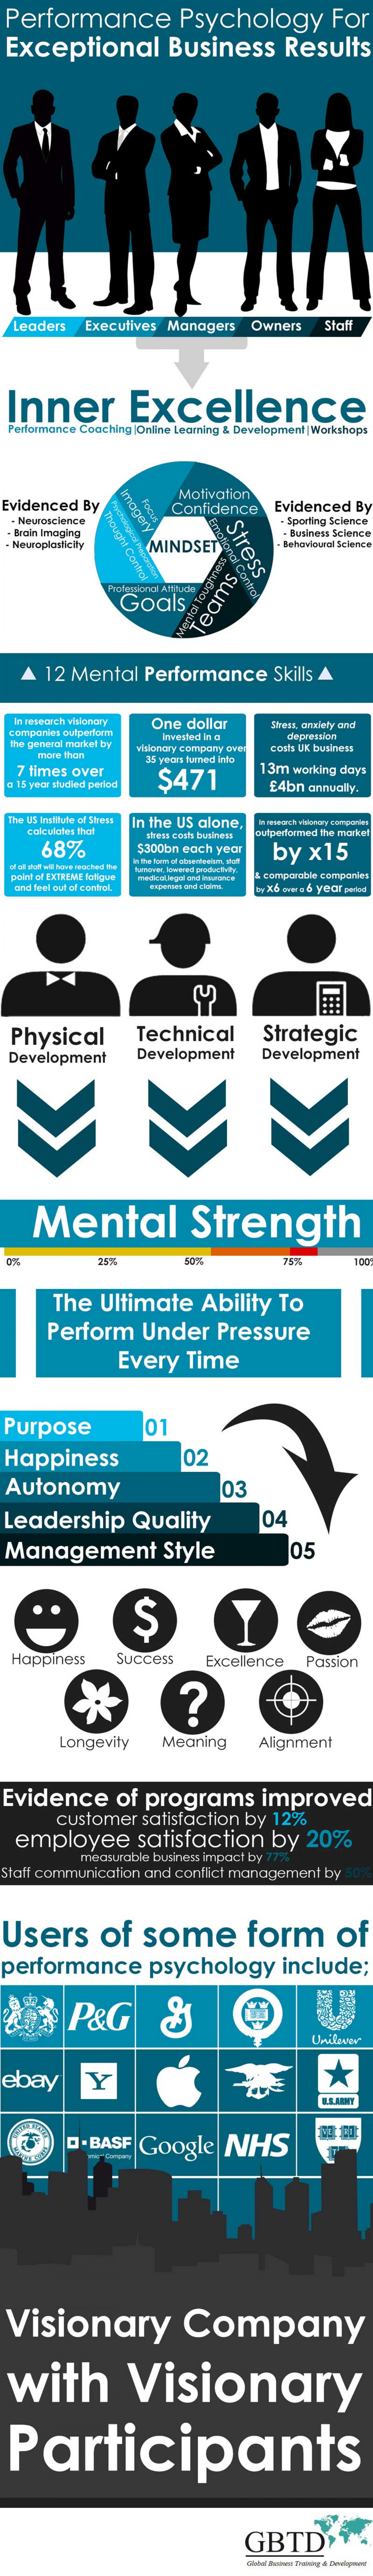 Performance Psychology for Exceptional Business Results Infographic